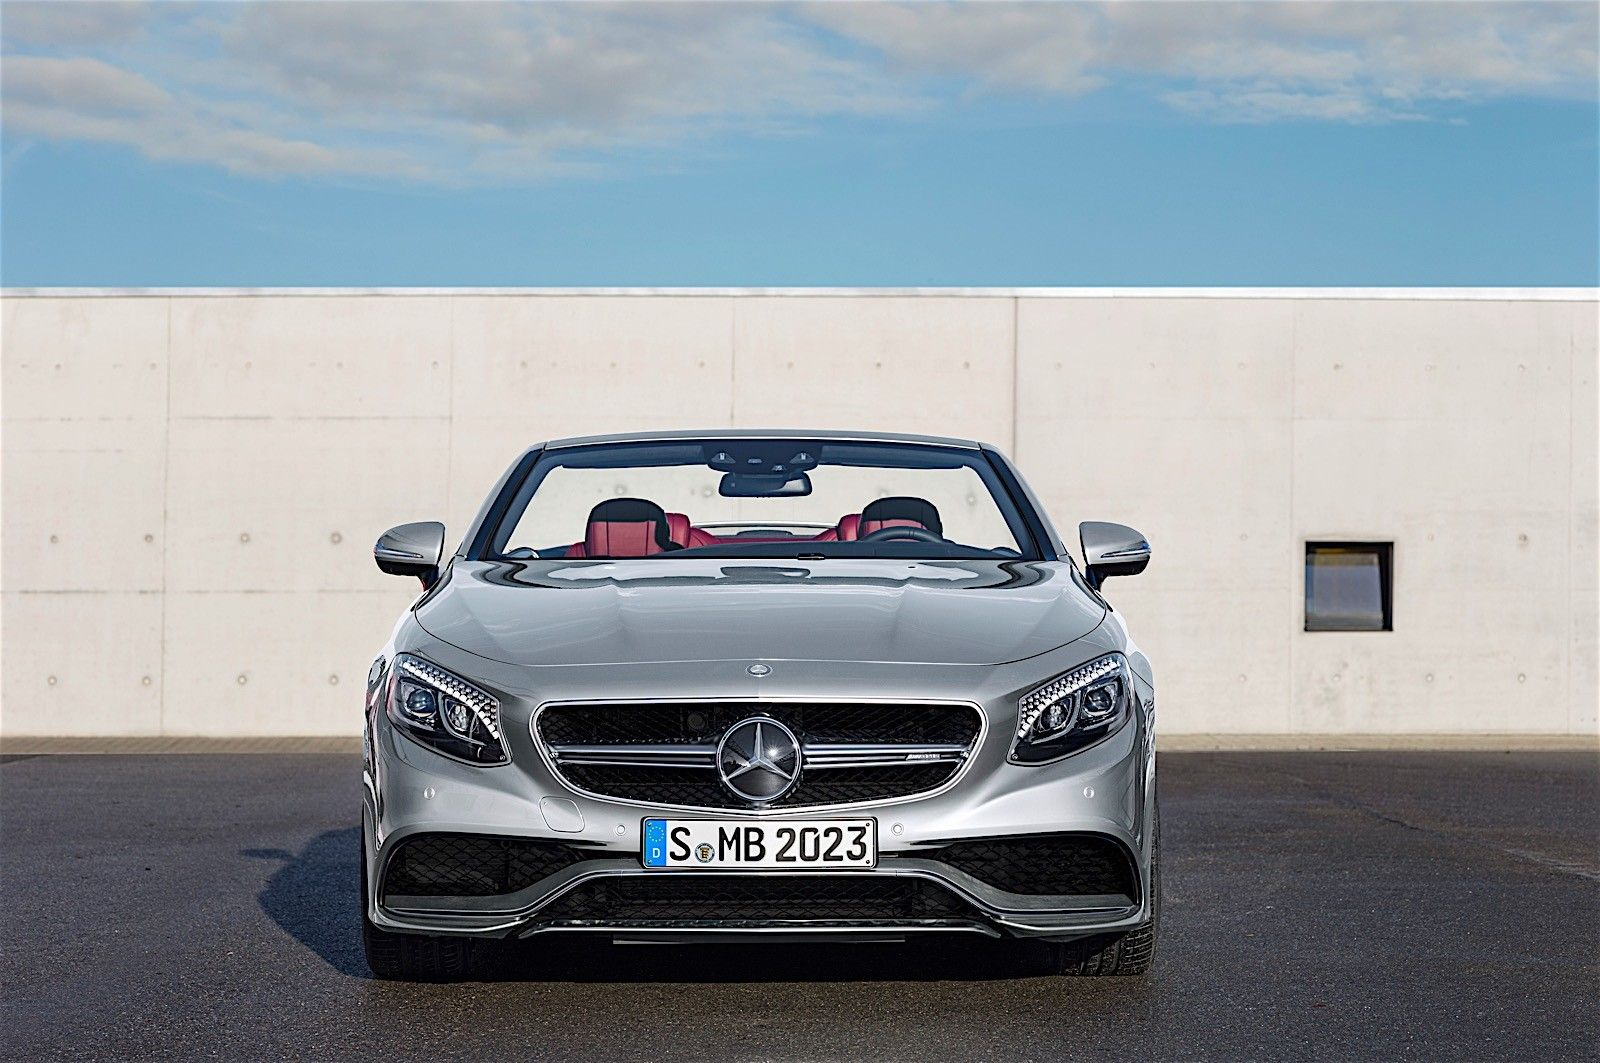 Mercedes-Benz's AMG division is celebrating 130 years since the invention of the automobile with a limited edition of the S63 Ca...